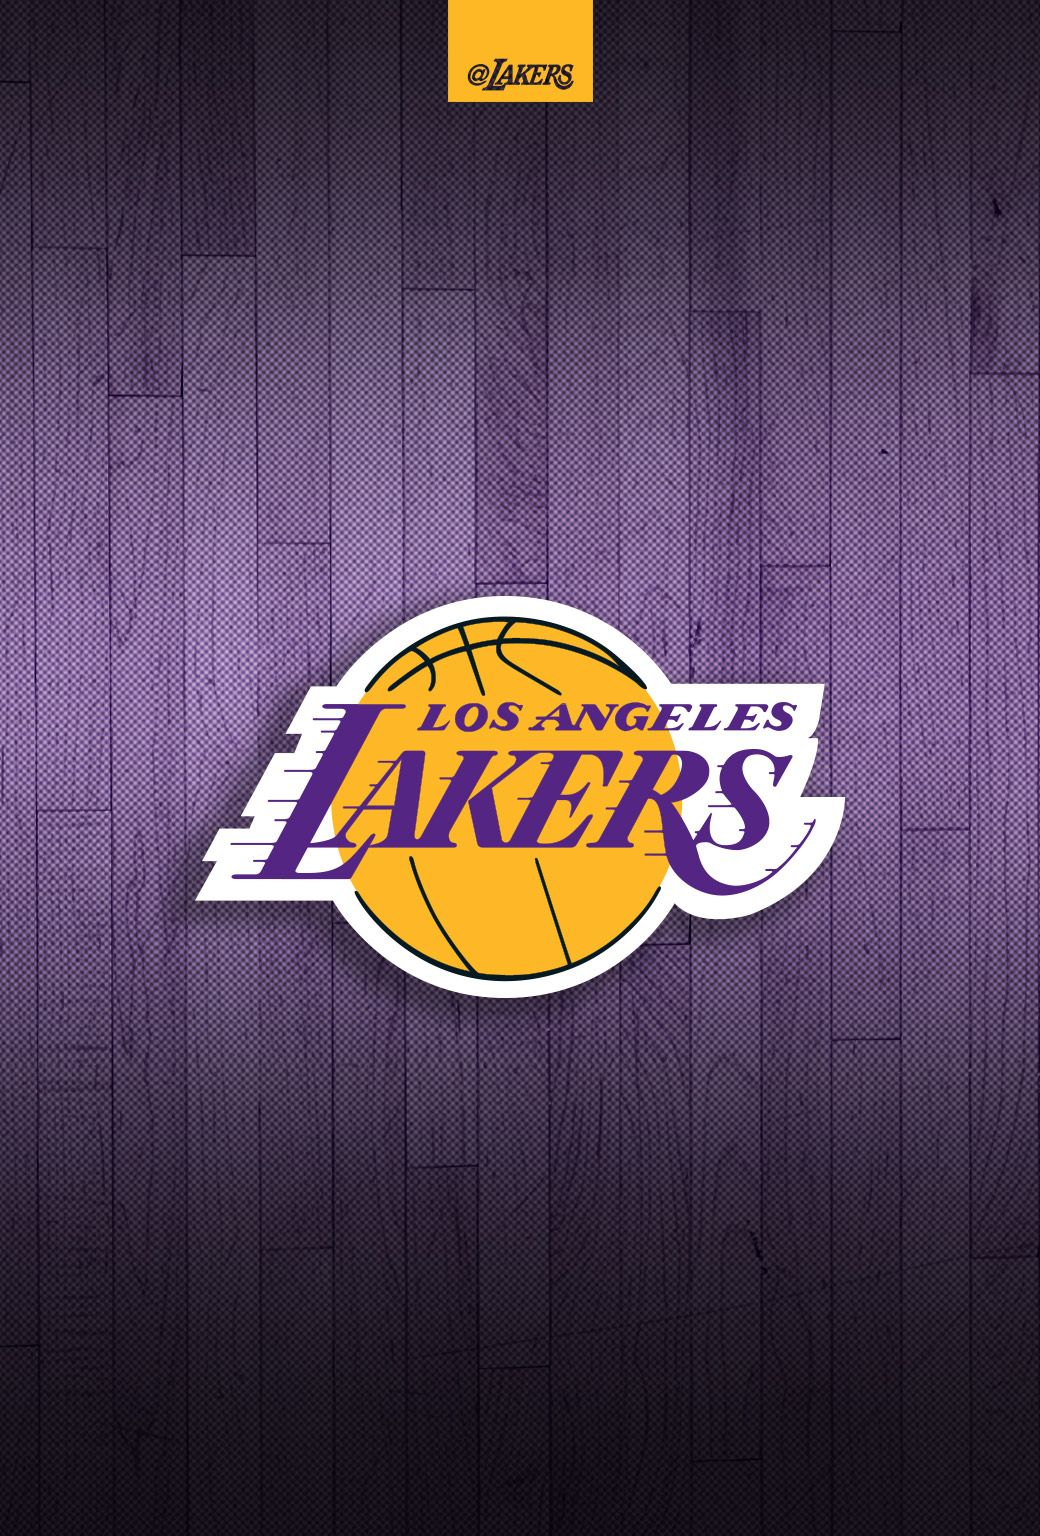 Lakers Wallpaper Android Live Wallpaper Hd Lakers Wallpaper Los Angeles Lakers Lakers